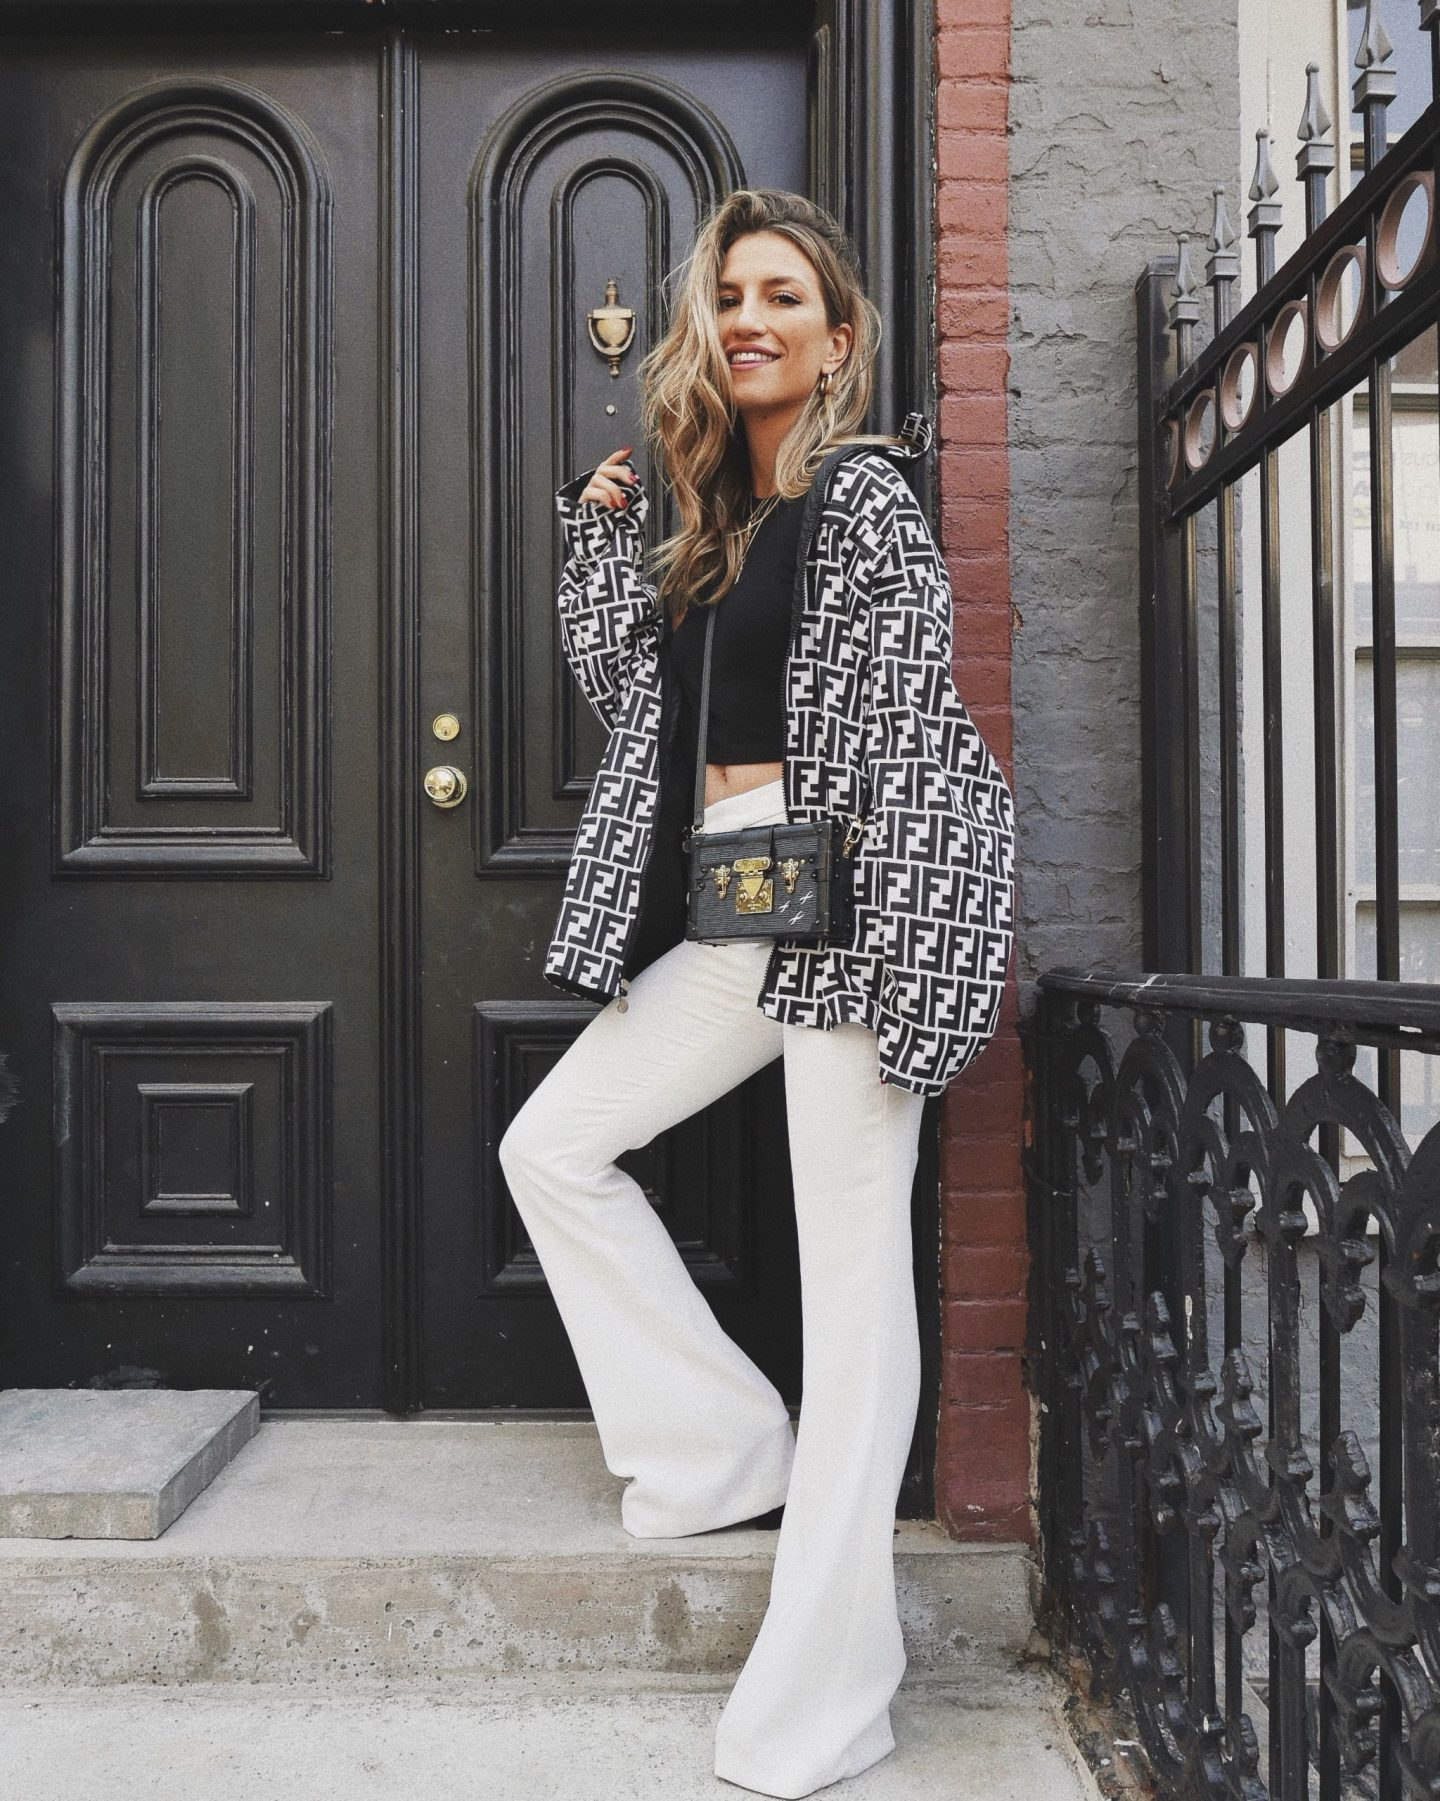 Cassandra DiMicco, Cass DiMicco, Dressed For Dreams, NYC, New York City, New York, Street Style NYC, Street Style 2018, NYC Street Style Street Style Outfits, 2018 Trends, NYC Fashion Blogger, Louis Vuitton petite Malle bag, vintage outfit, vintage jacket, vintage fendi, fendi jacket